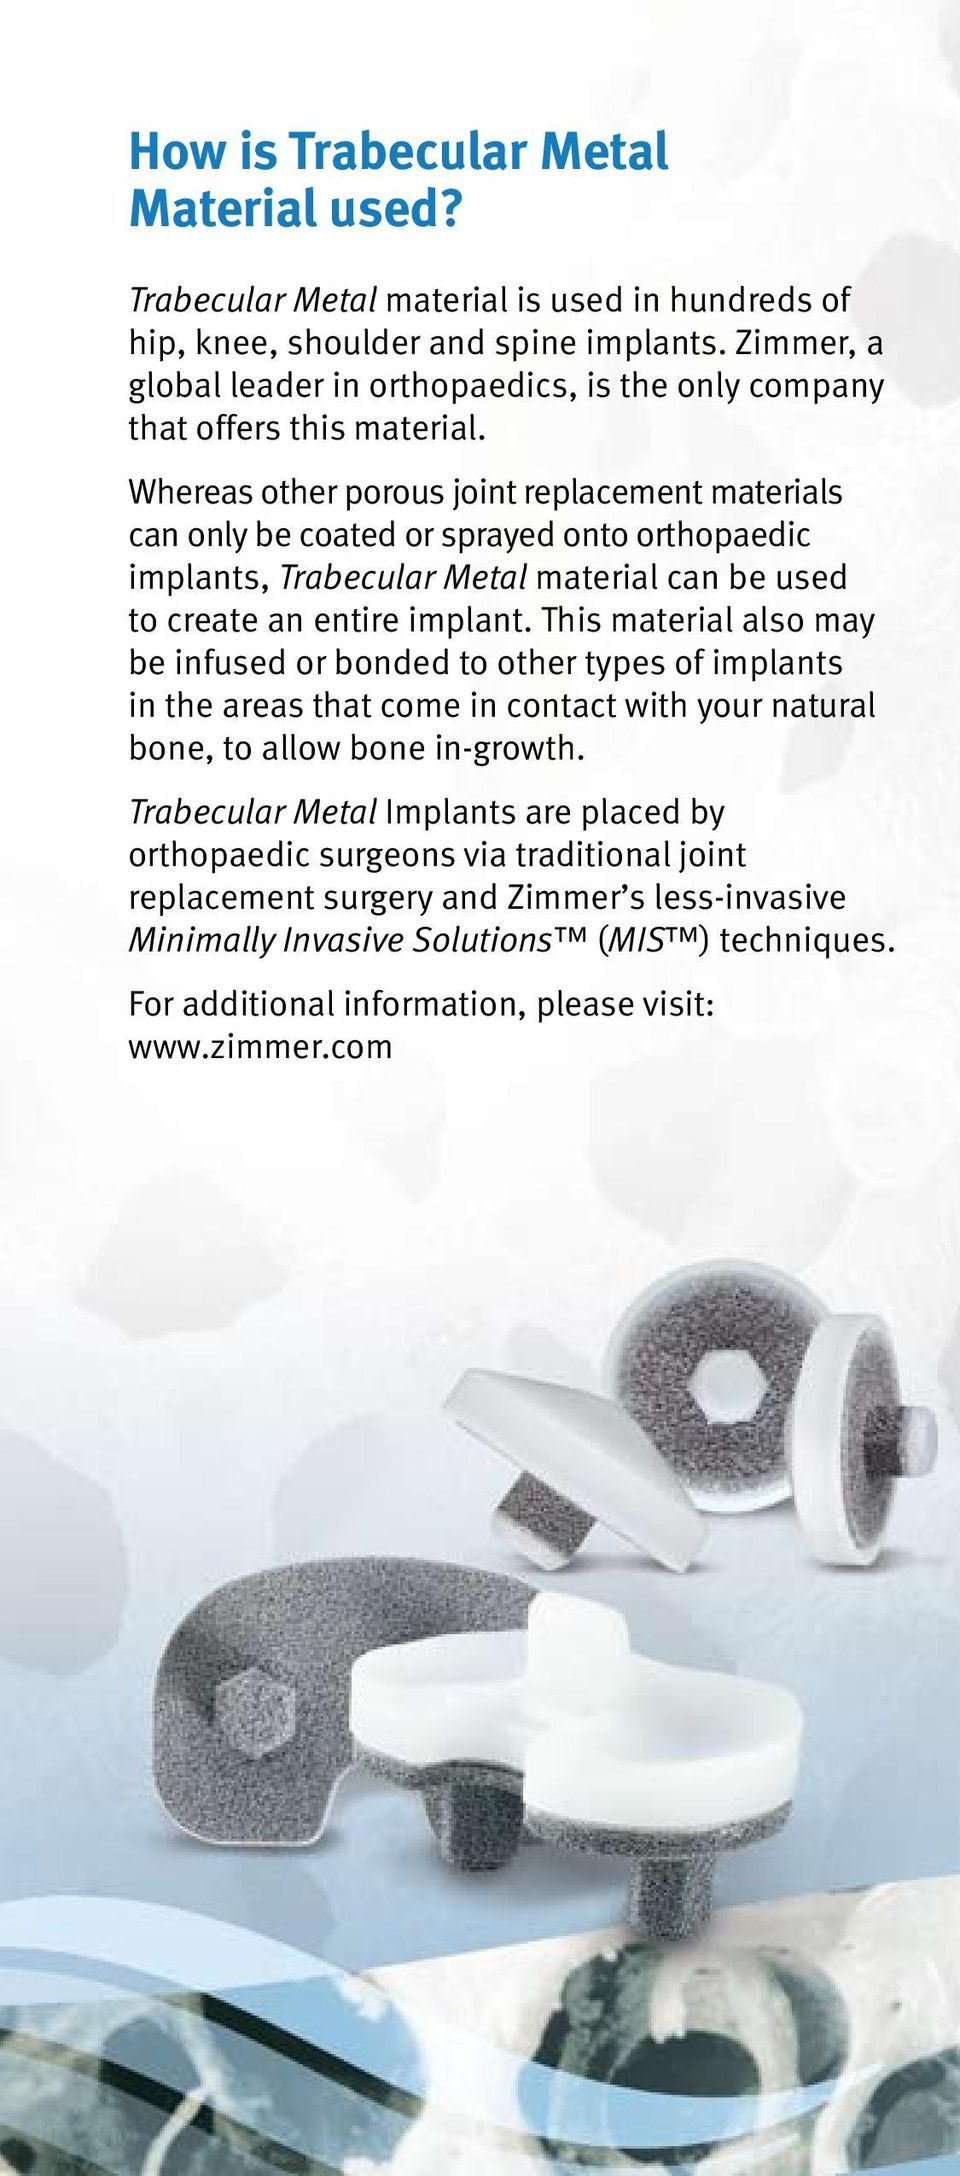 Whereas other porous joint replacement materials can only be coated or sprayed onto orthopaedic implants, Trabecular Metal material can be used to create an entire implant.